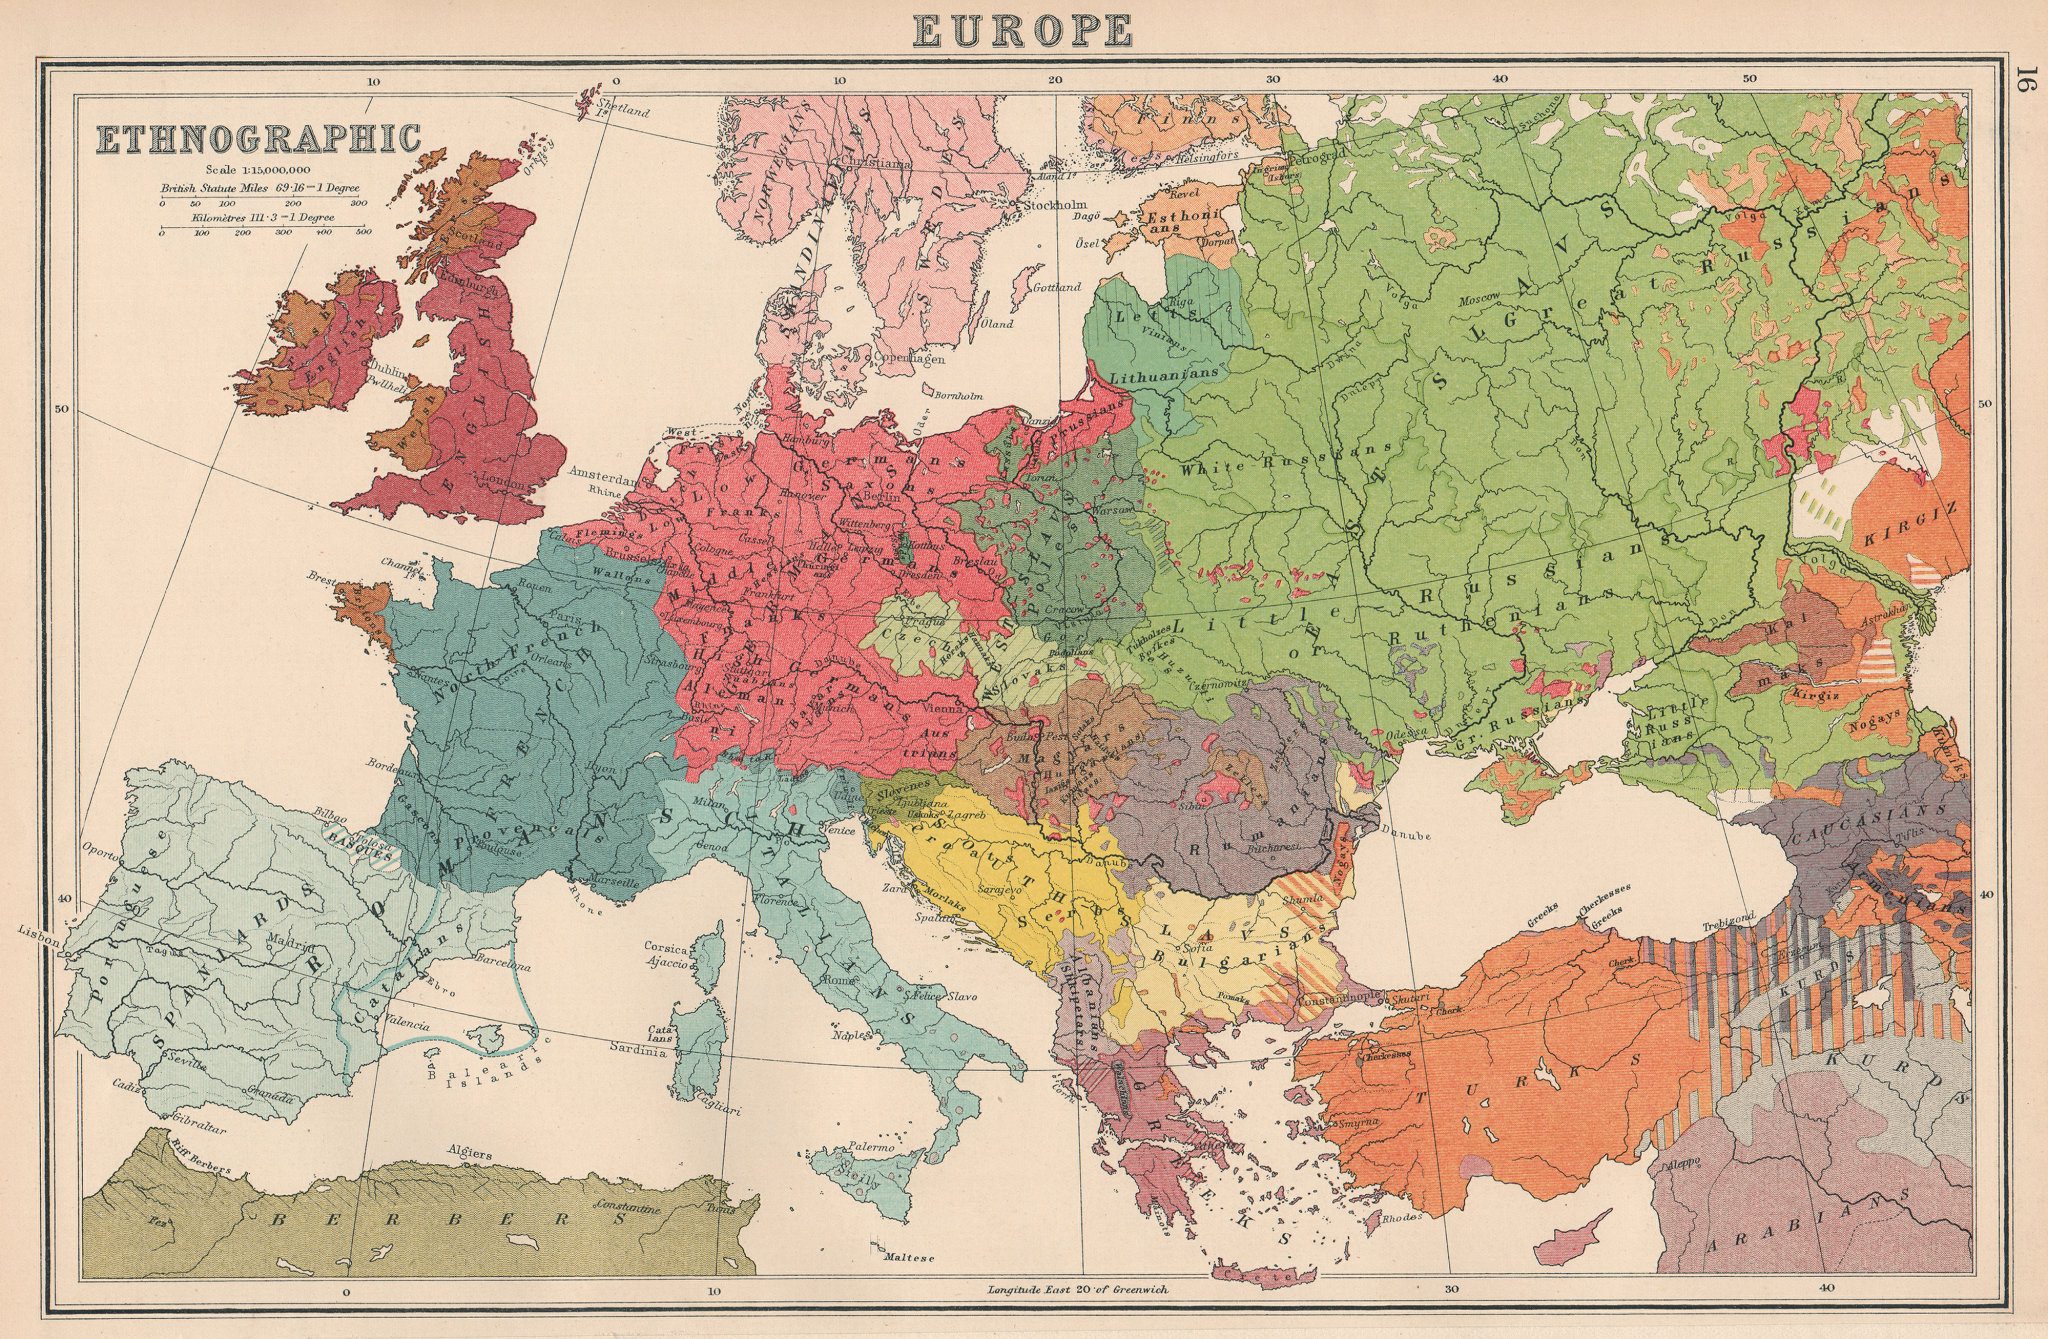 Associate Product EUROPE ETHNOGRAPHIC. Races Racial. BARTHOLOMEW 1924 old vintage map plan chart